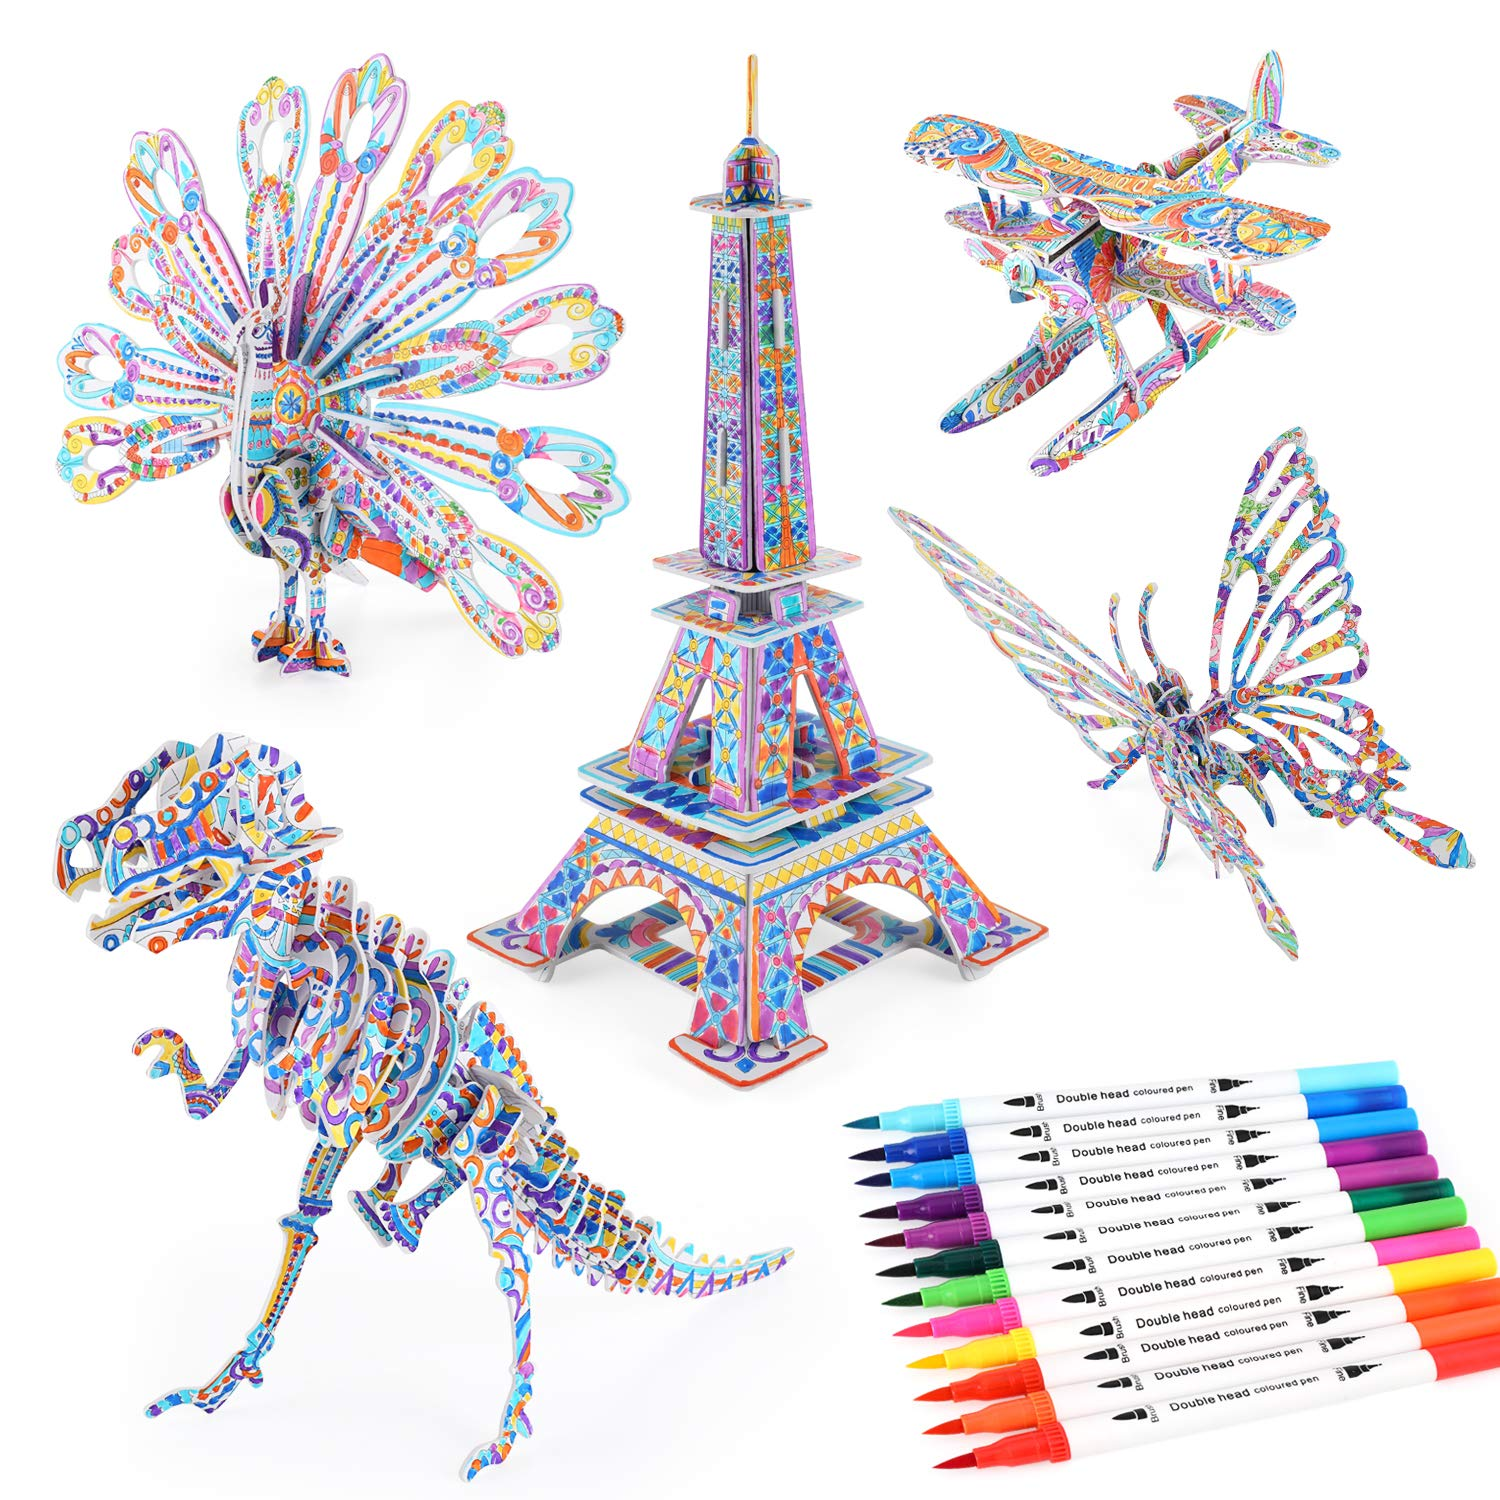 BEARUN 3D Coloring Puzzle Set, Arts and Crafts for Girls and Boys Age 6 7 8 9 10 11 12 Years Old, Fun Educational Painting Crafts Kit with Supplies for Kids, Birthday Toy Gift for Kids (5-Pack)